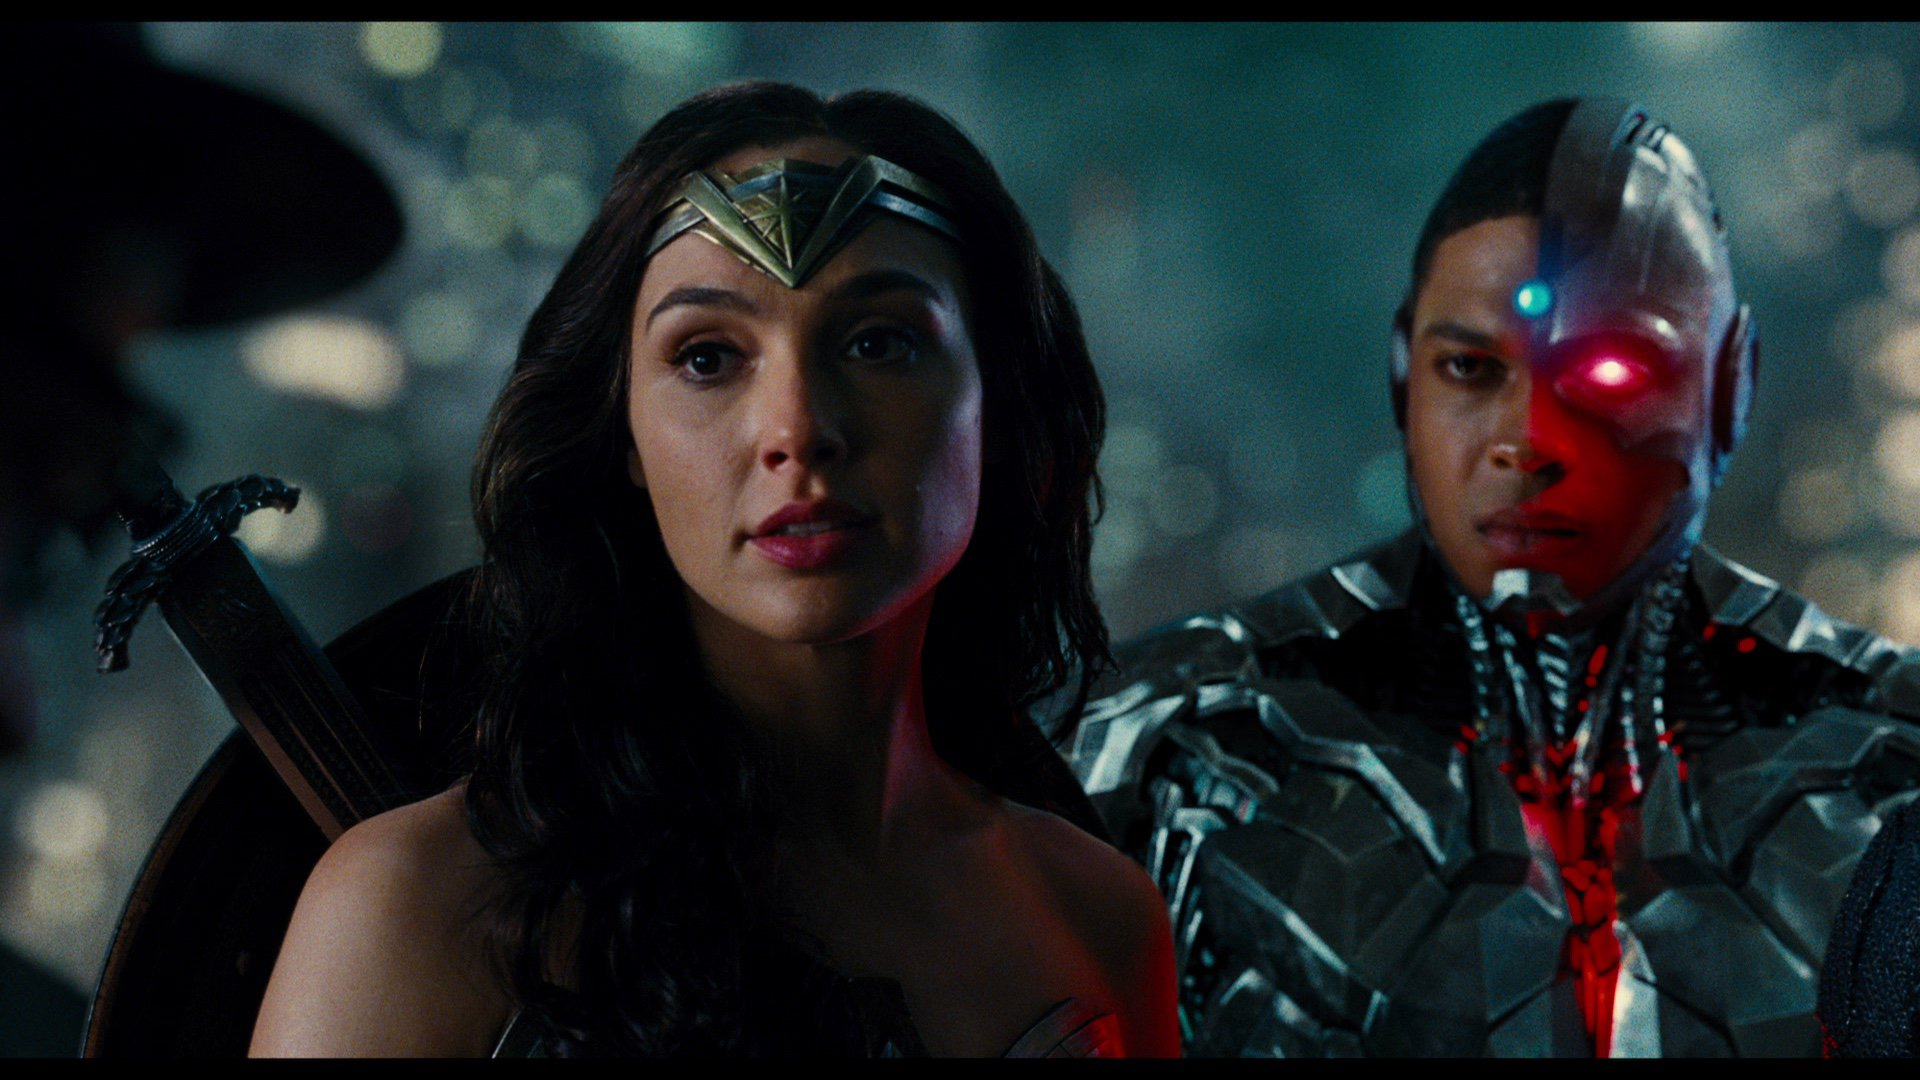 Justice League Movie Images 857104 HD Wallpaper And Background Photos